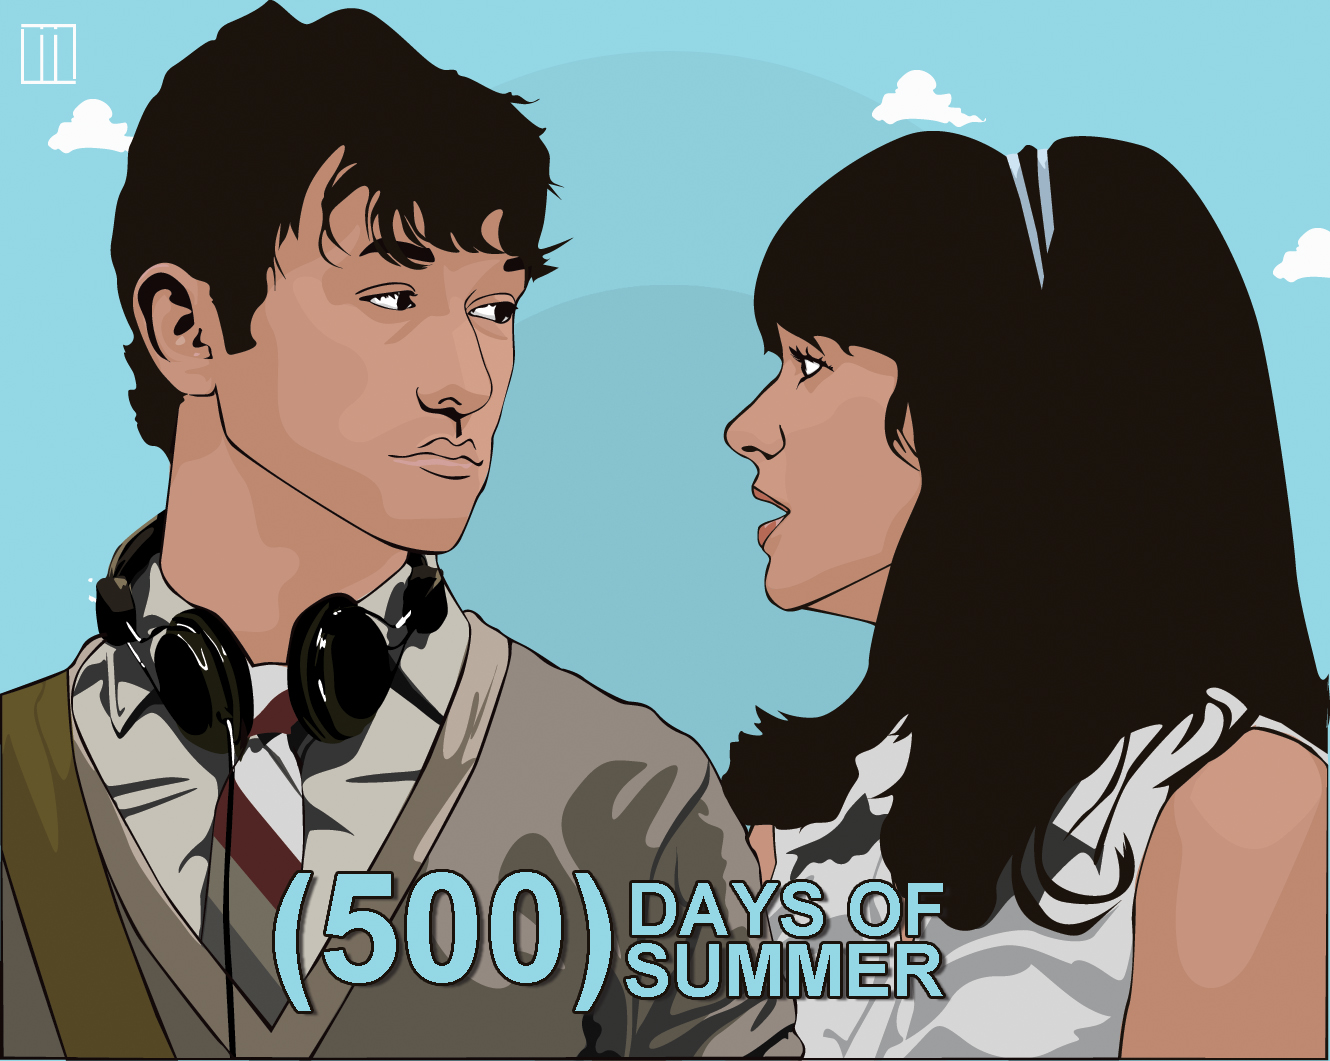 500 days of summer Summer refers to a woman's name and not to the annual season (500 days with summer) tom becomes involved with summer, though it's strictly platonic.